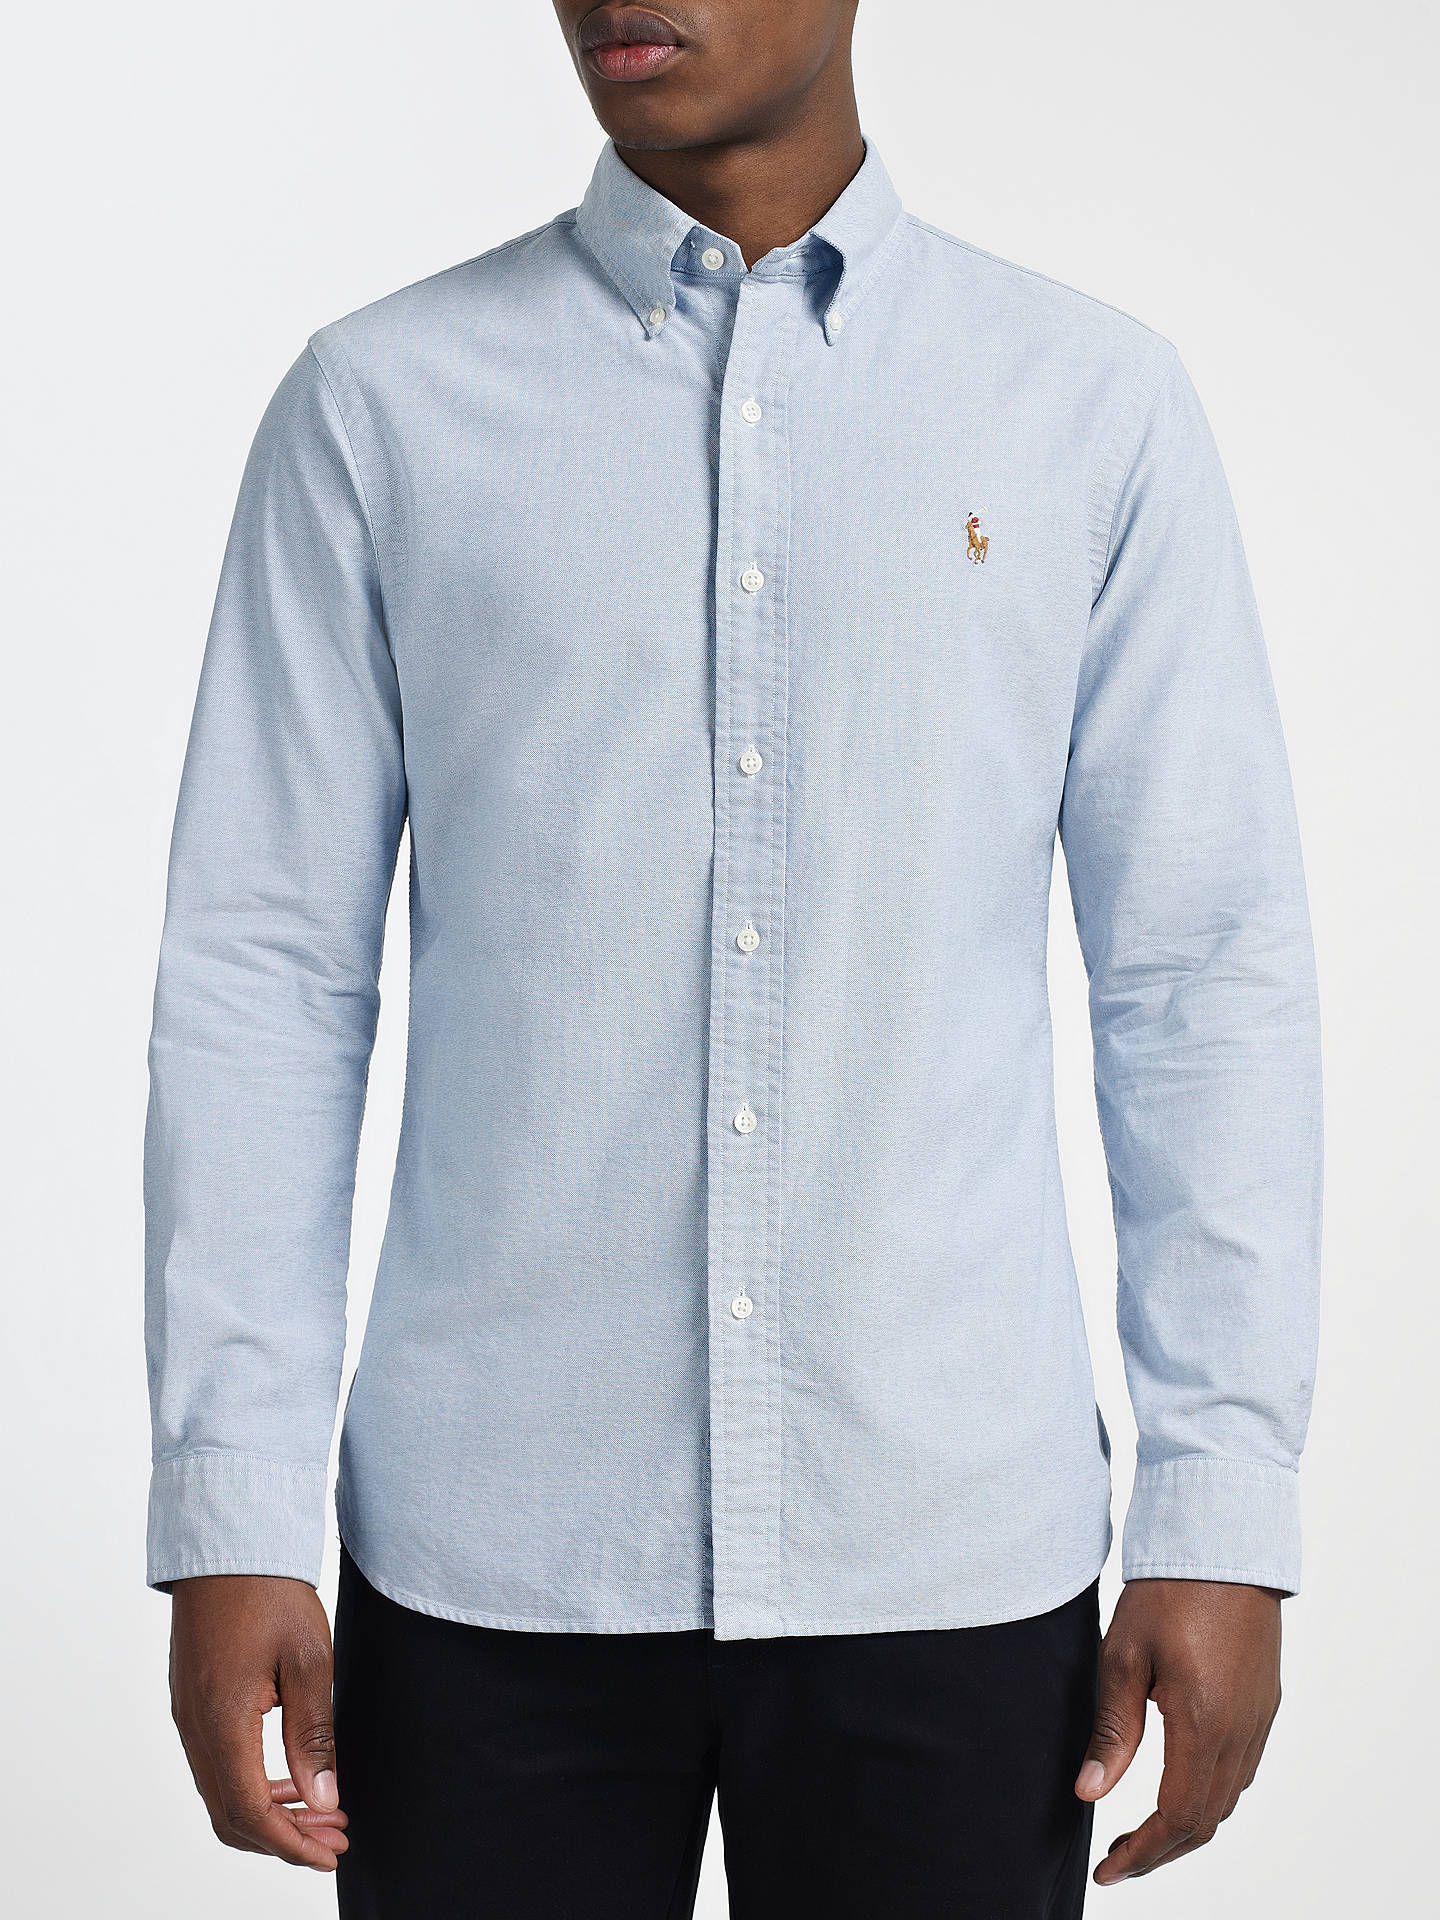 BuyPolo Ralph Lauren Cotton Oxford Slim Fit Shirt, Sky, S Online at  johnlewis. 8fc561e4bfe